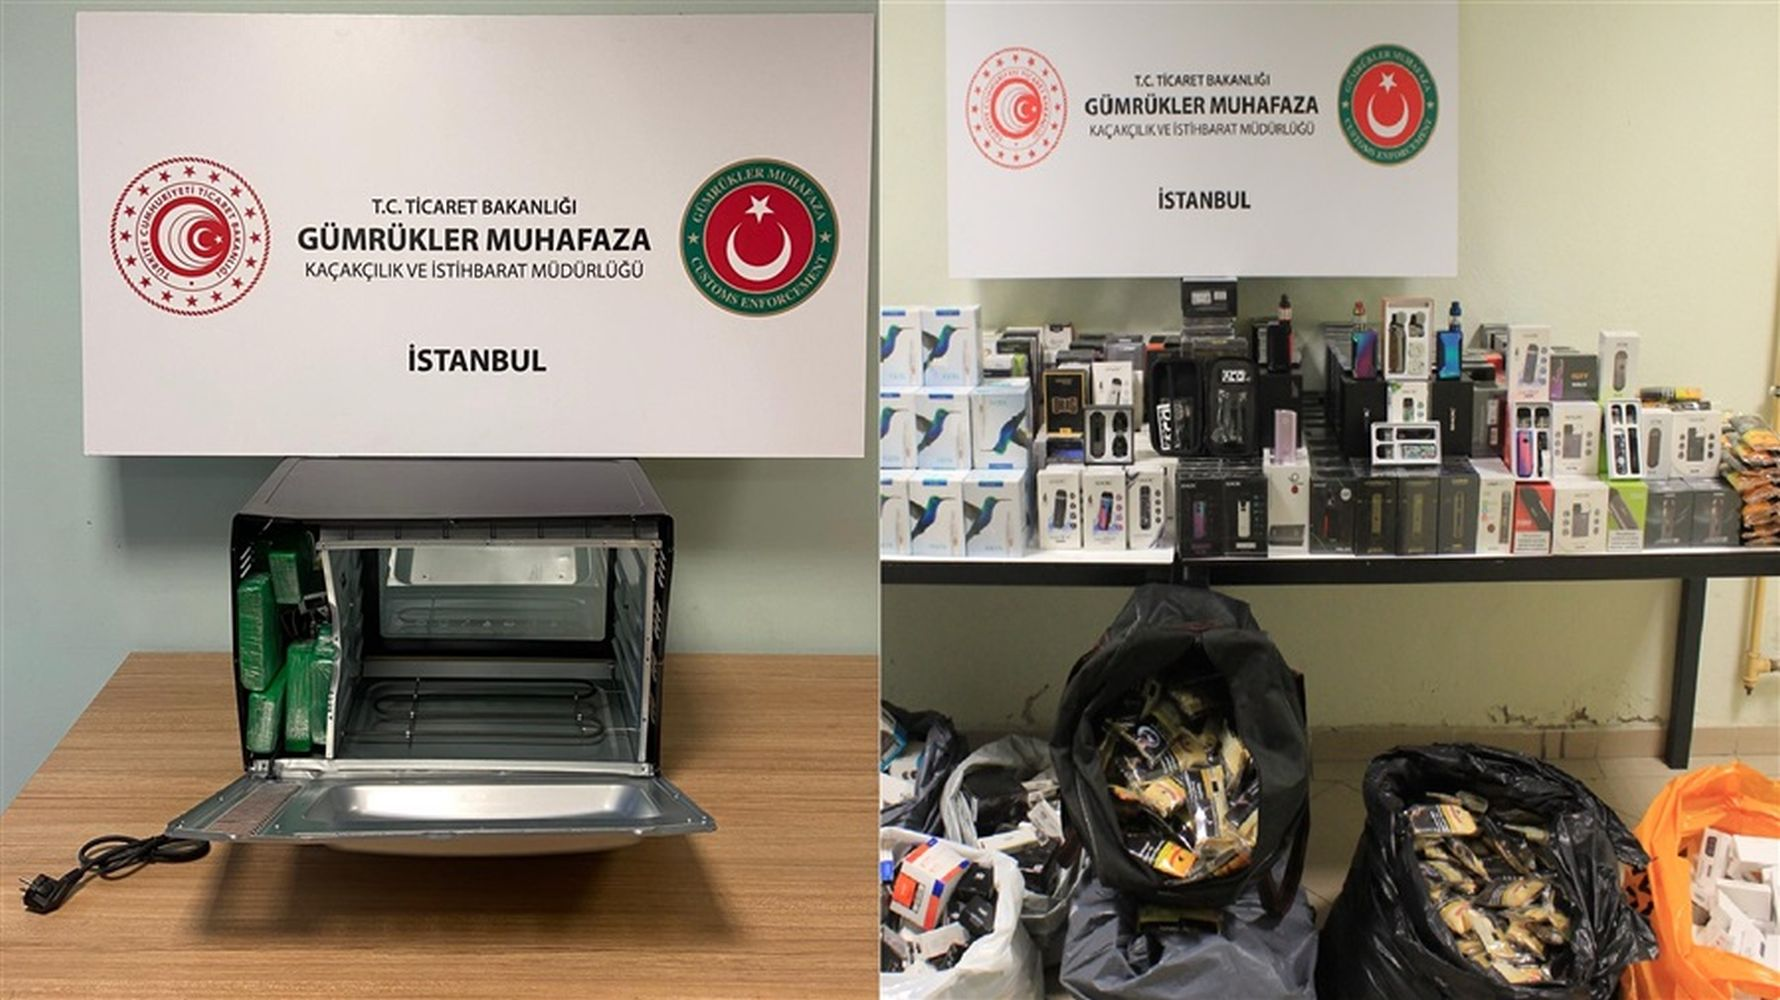 An electronic cigarette caught in a drug warehouse in the microwave oven in Istanbul